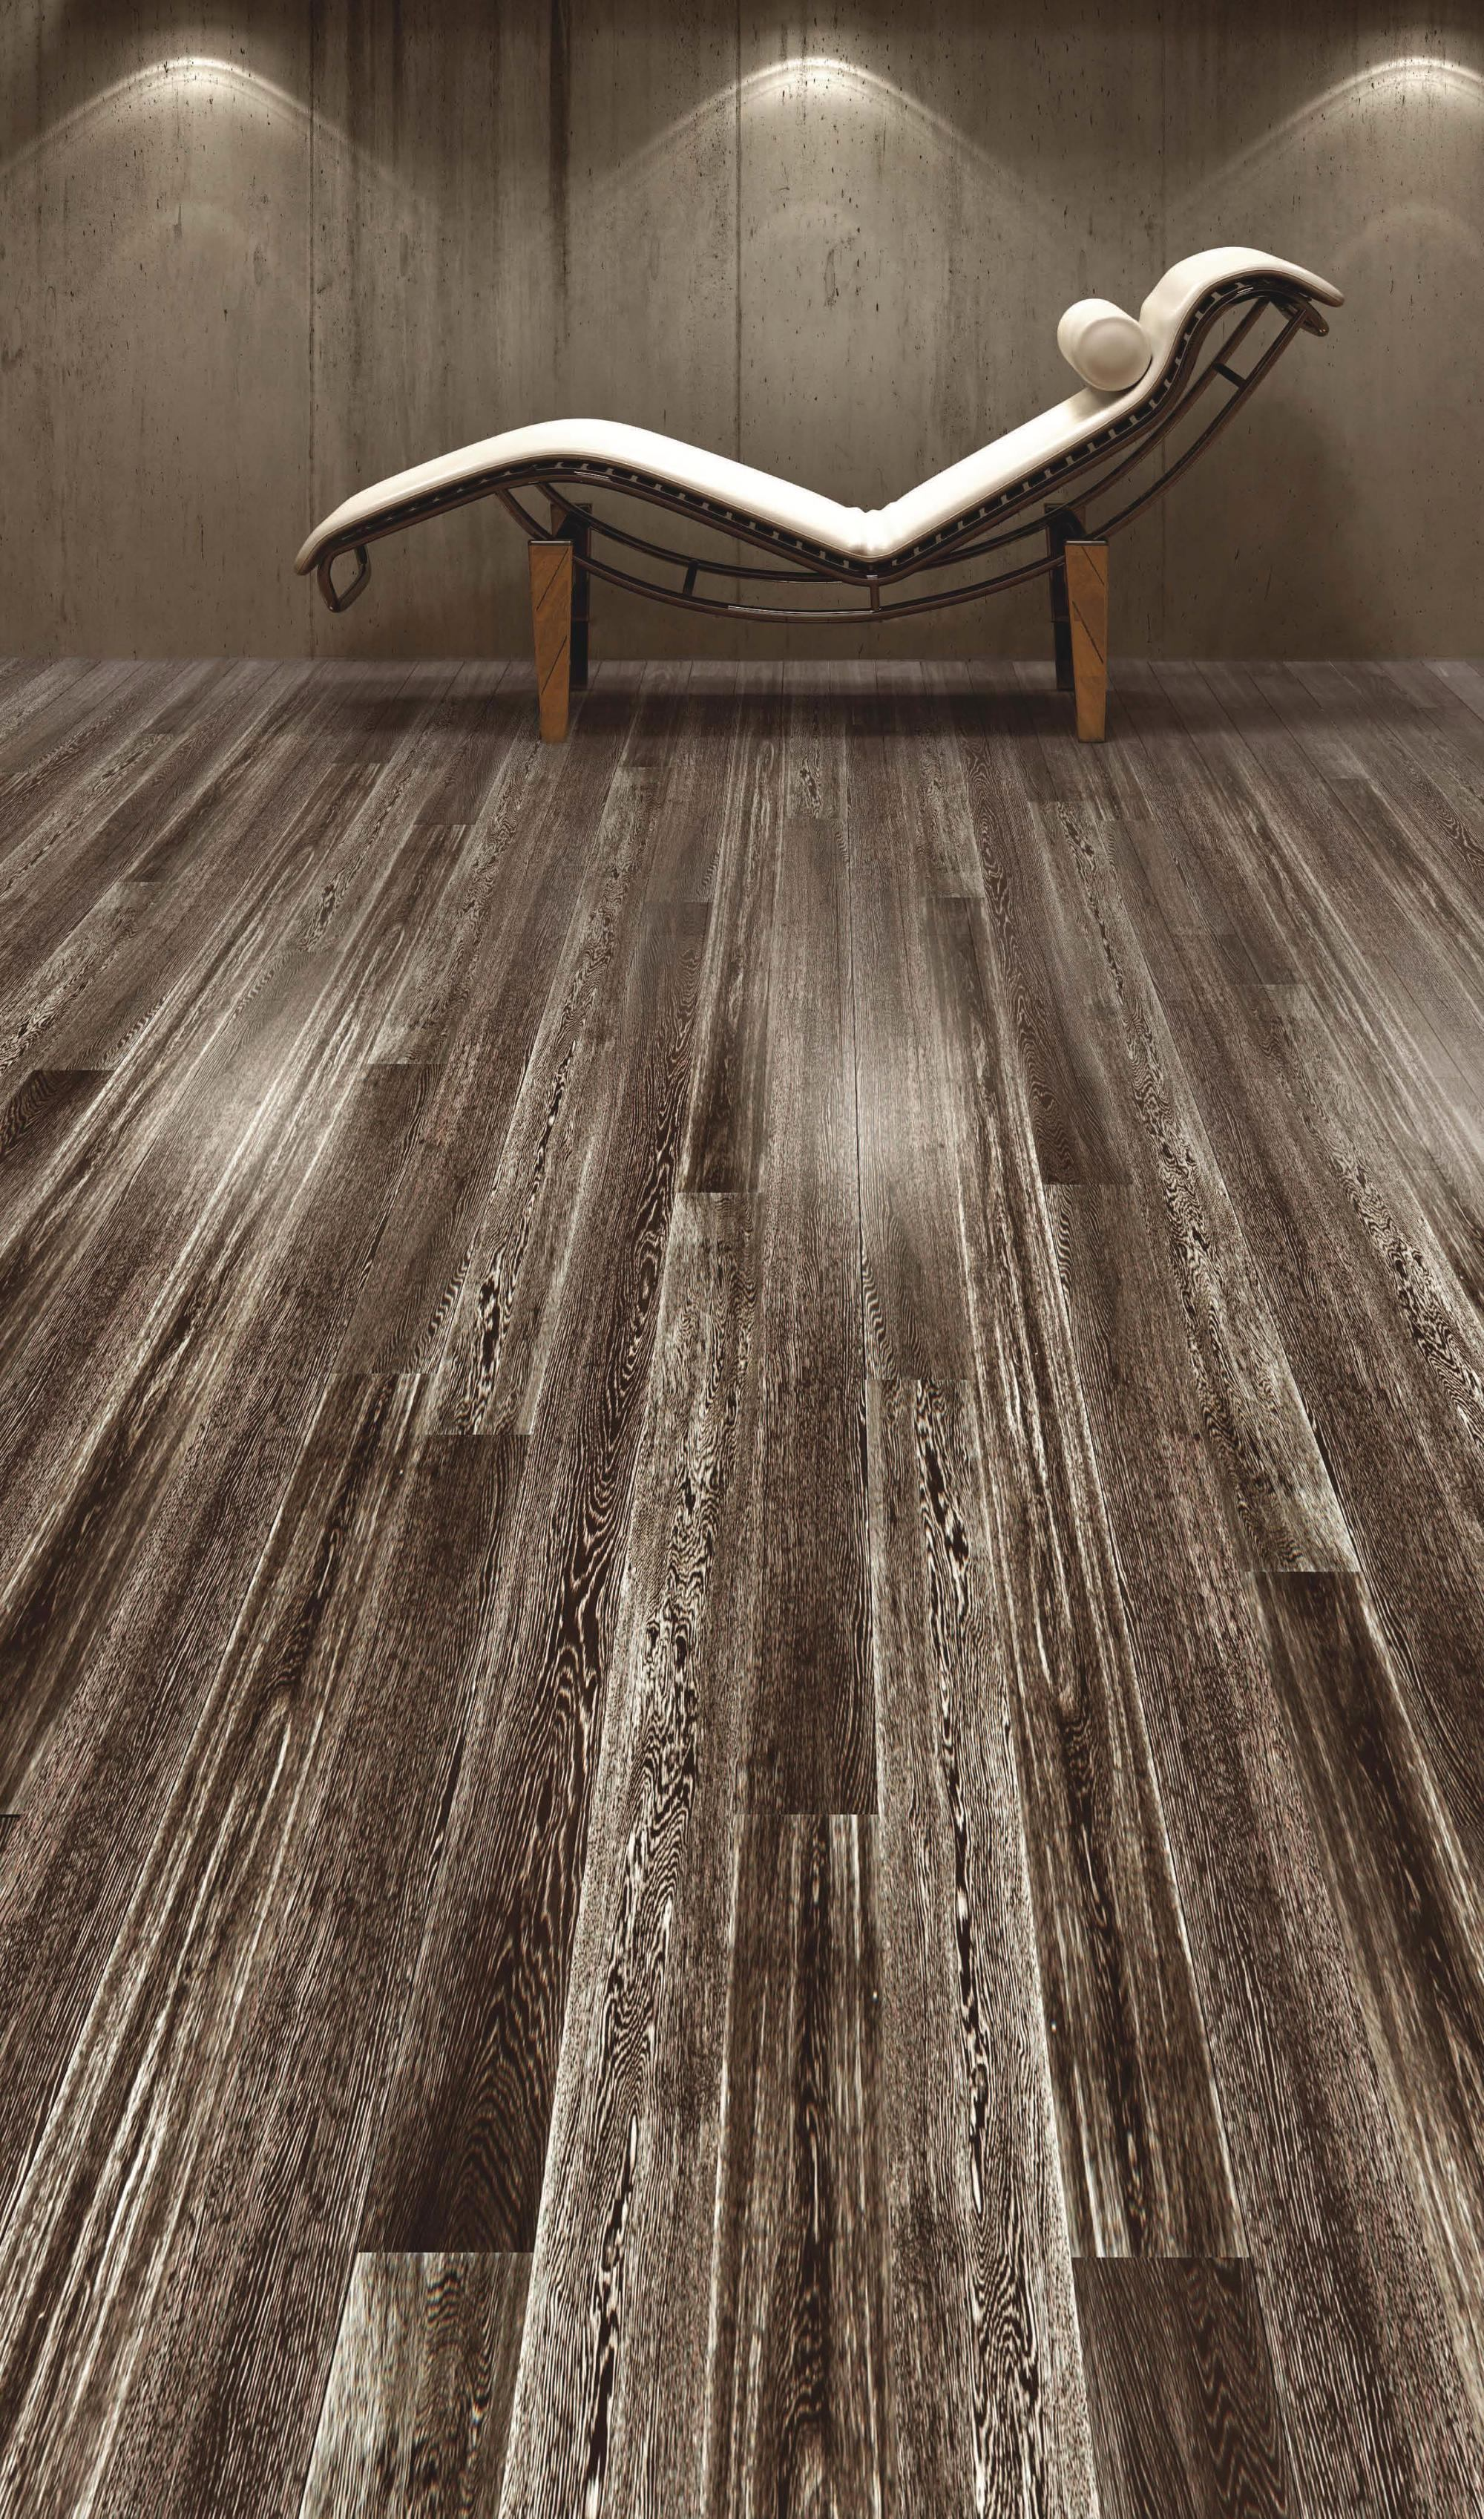 Sfi engineered wood floors reviews - Certified Sustainable Wood Flooring From Terra Legno Ecobuilding Pulse Magazine Green Products Flooring Engineered Wood Green Materials Interiors